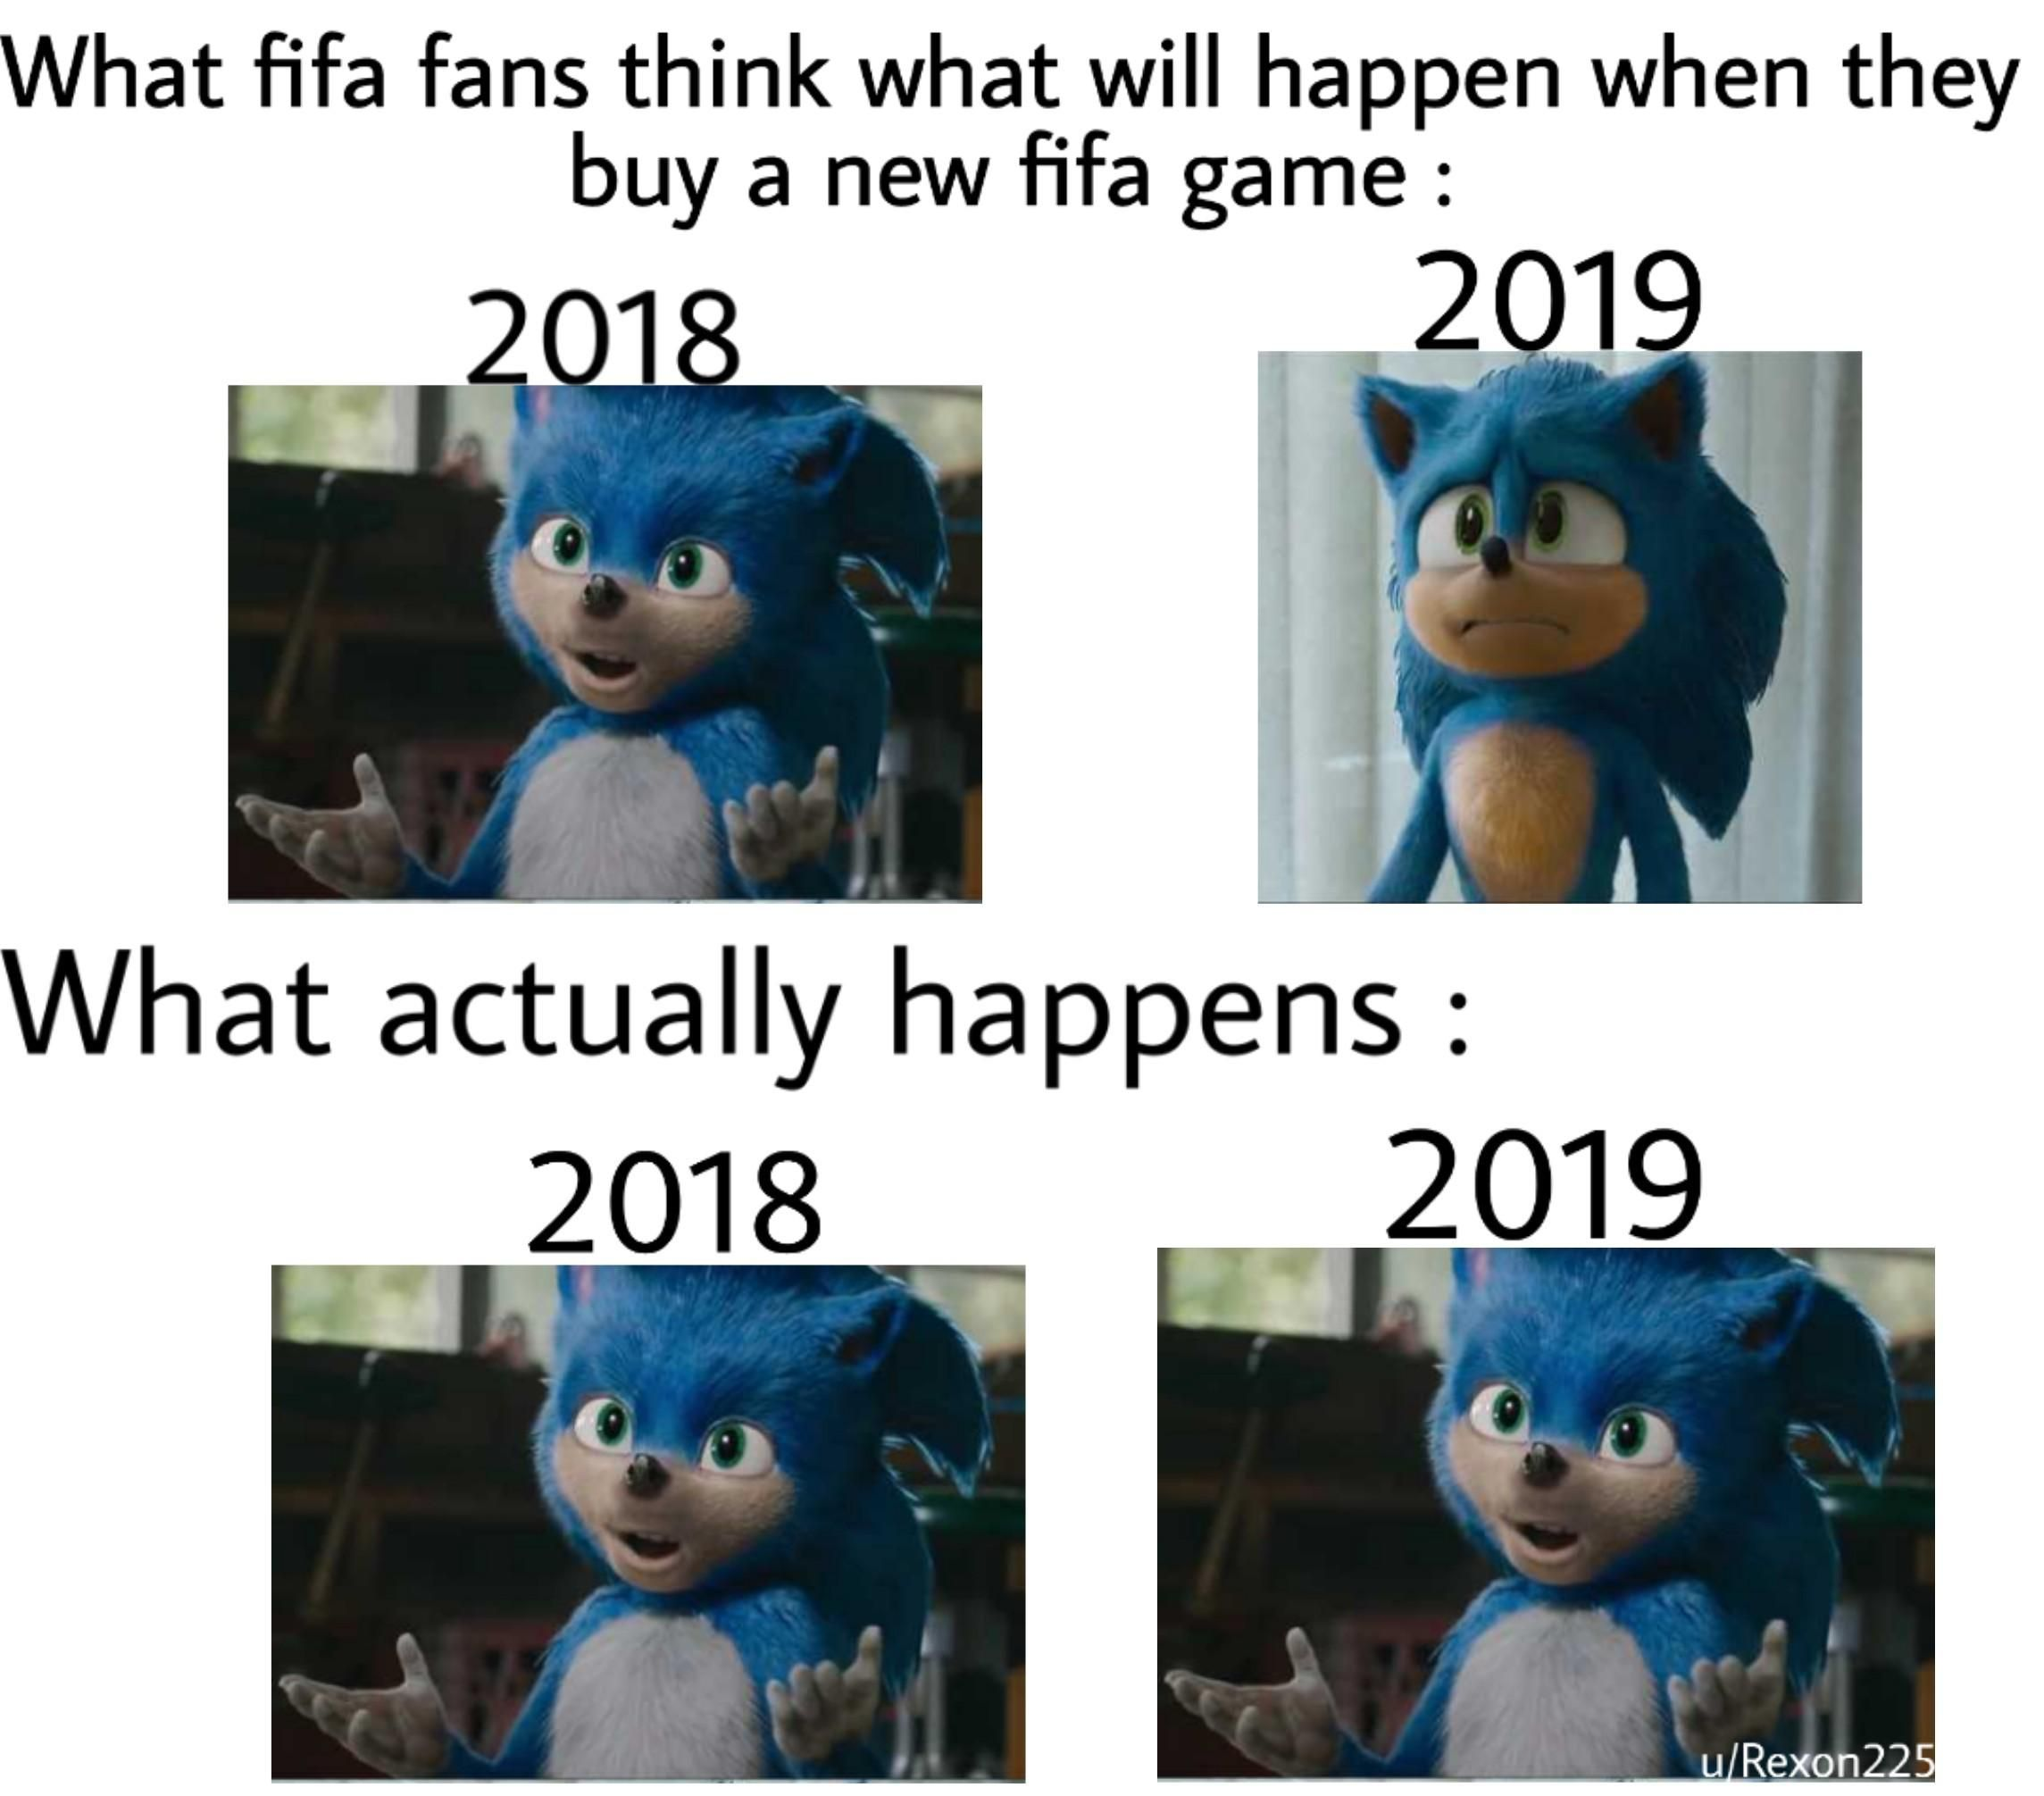 Imagine buying the same game every year Posted by u